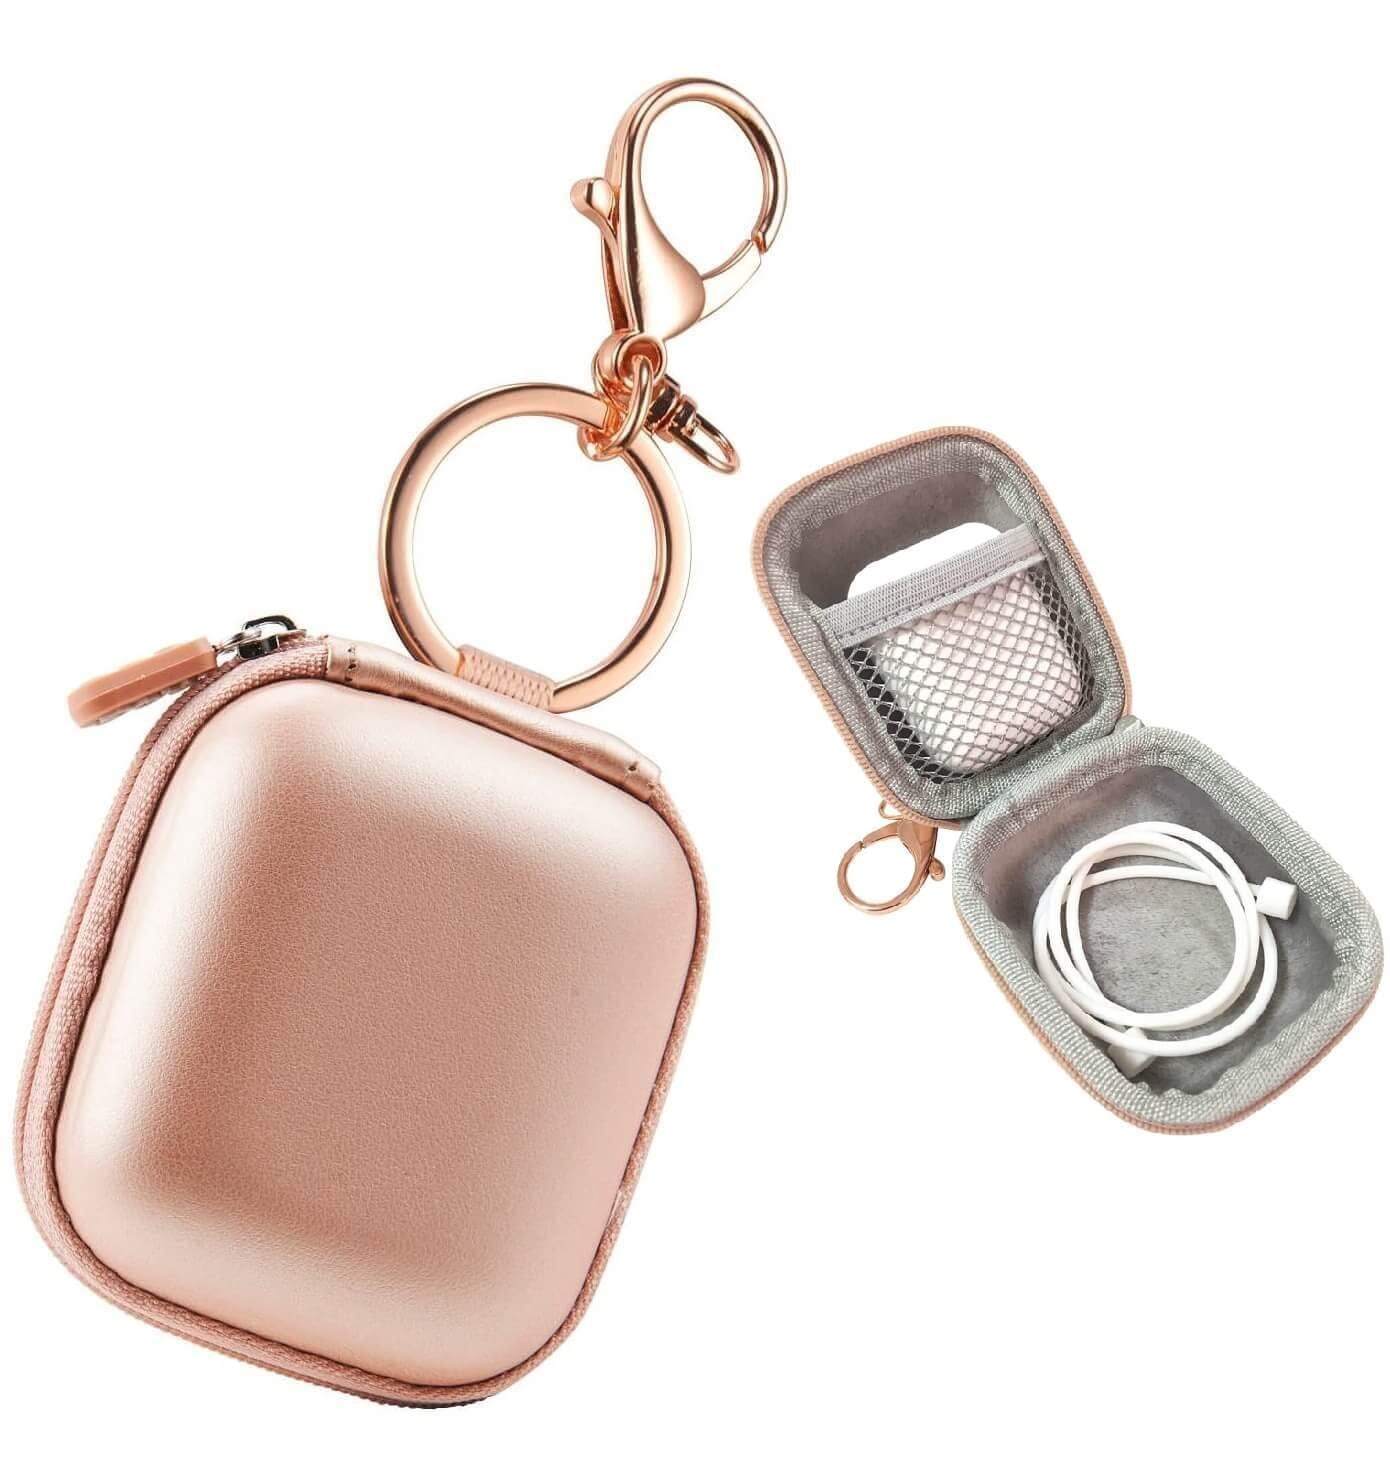 Case for AirPods Case with Keychain  Airpod Cover Airpods Pouch Airpod Holder Case Wireless Earphones Carrying AirPods case keyring